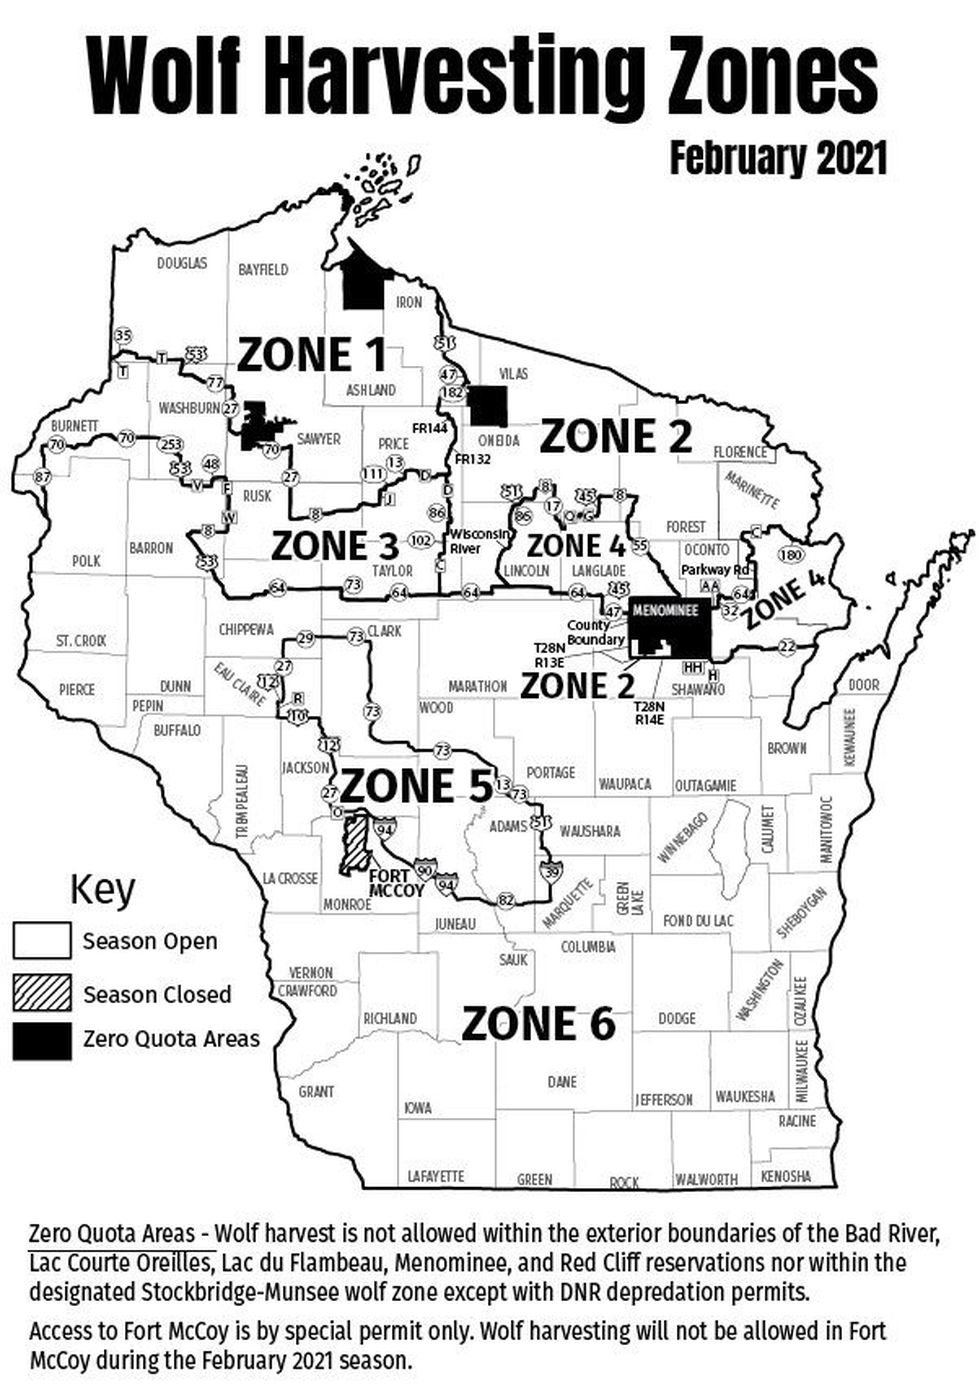 A map of the Wolf Harvesting Zones in February 2021.